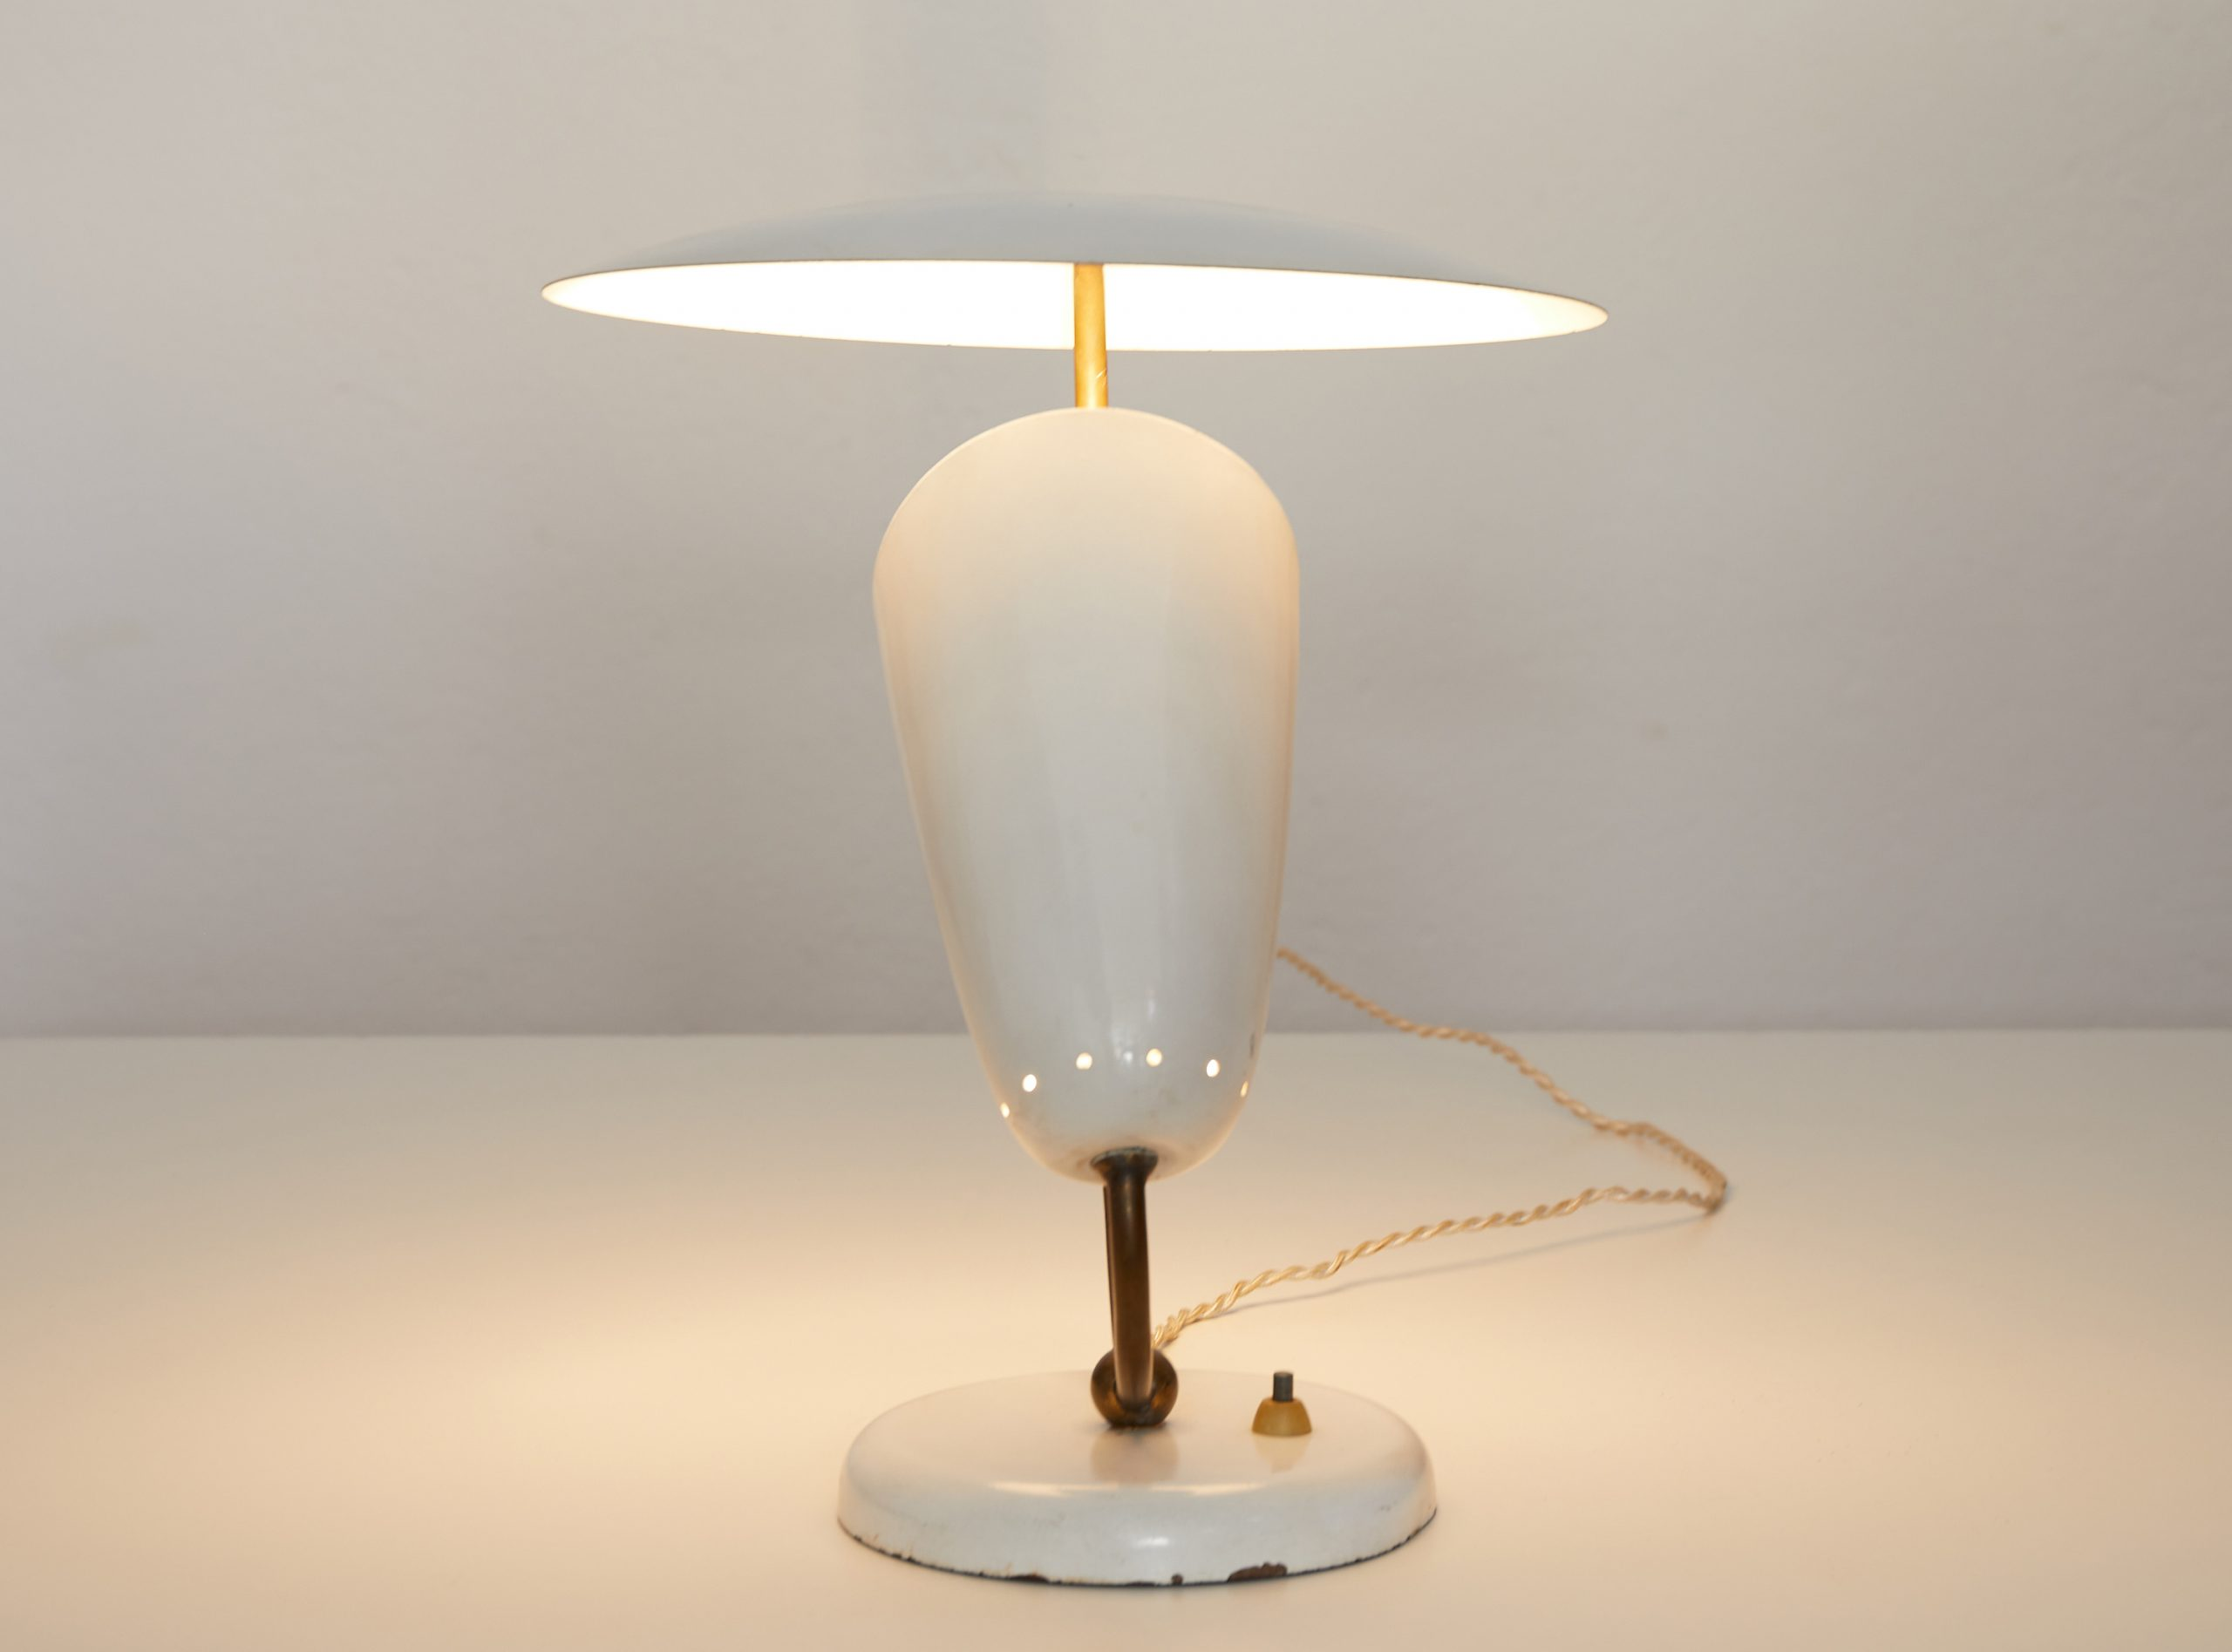 brass-and-enameled-metal-table-lamp-switzerland-1950-image-02